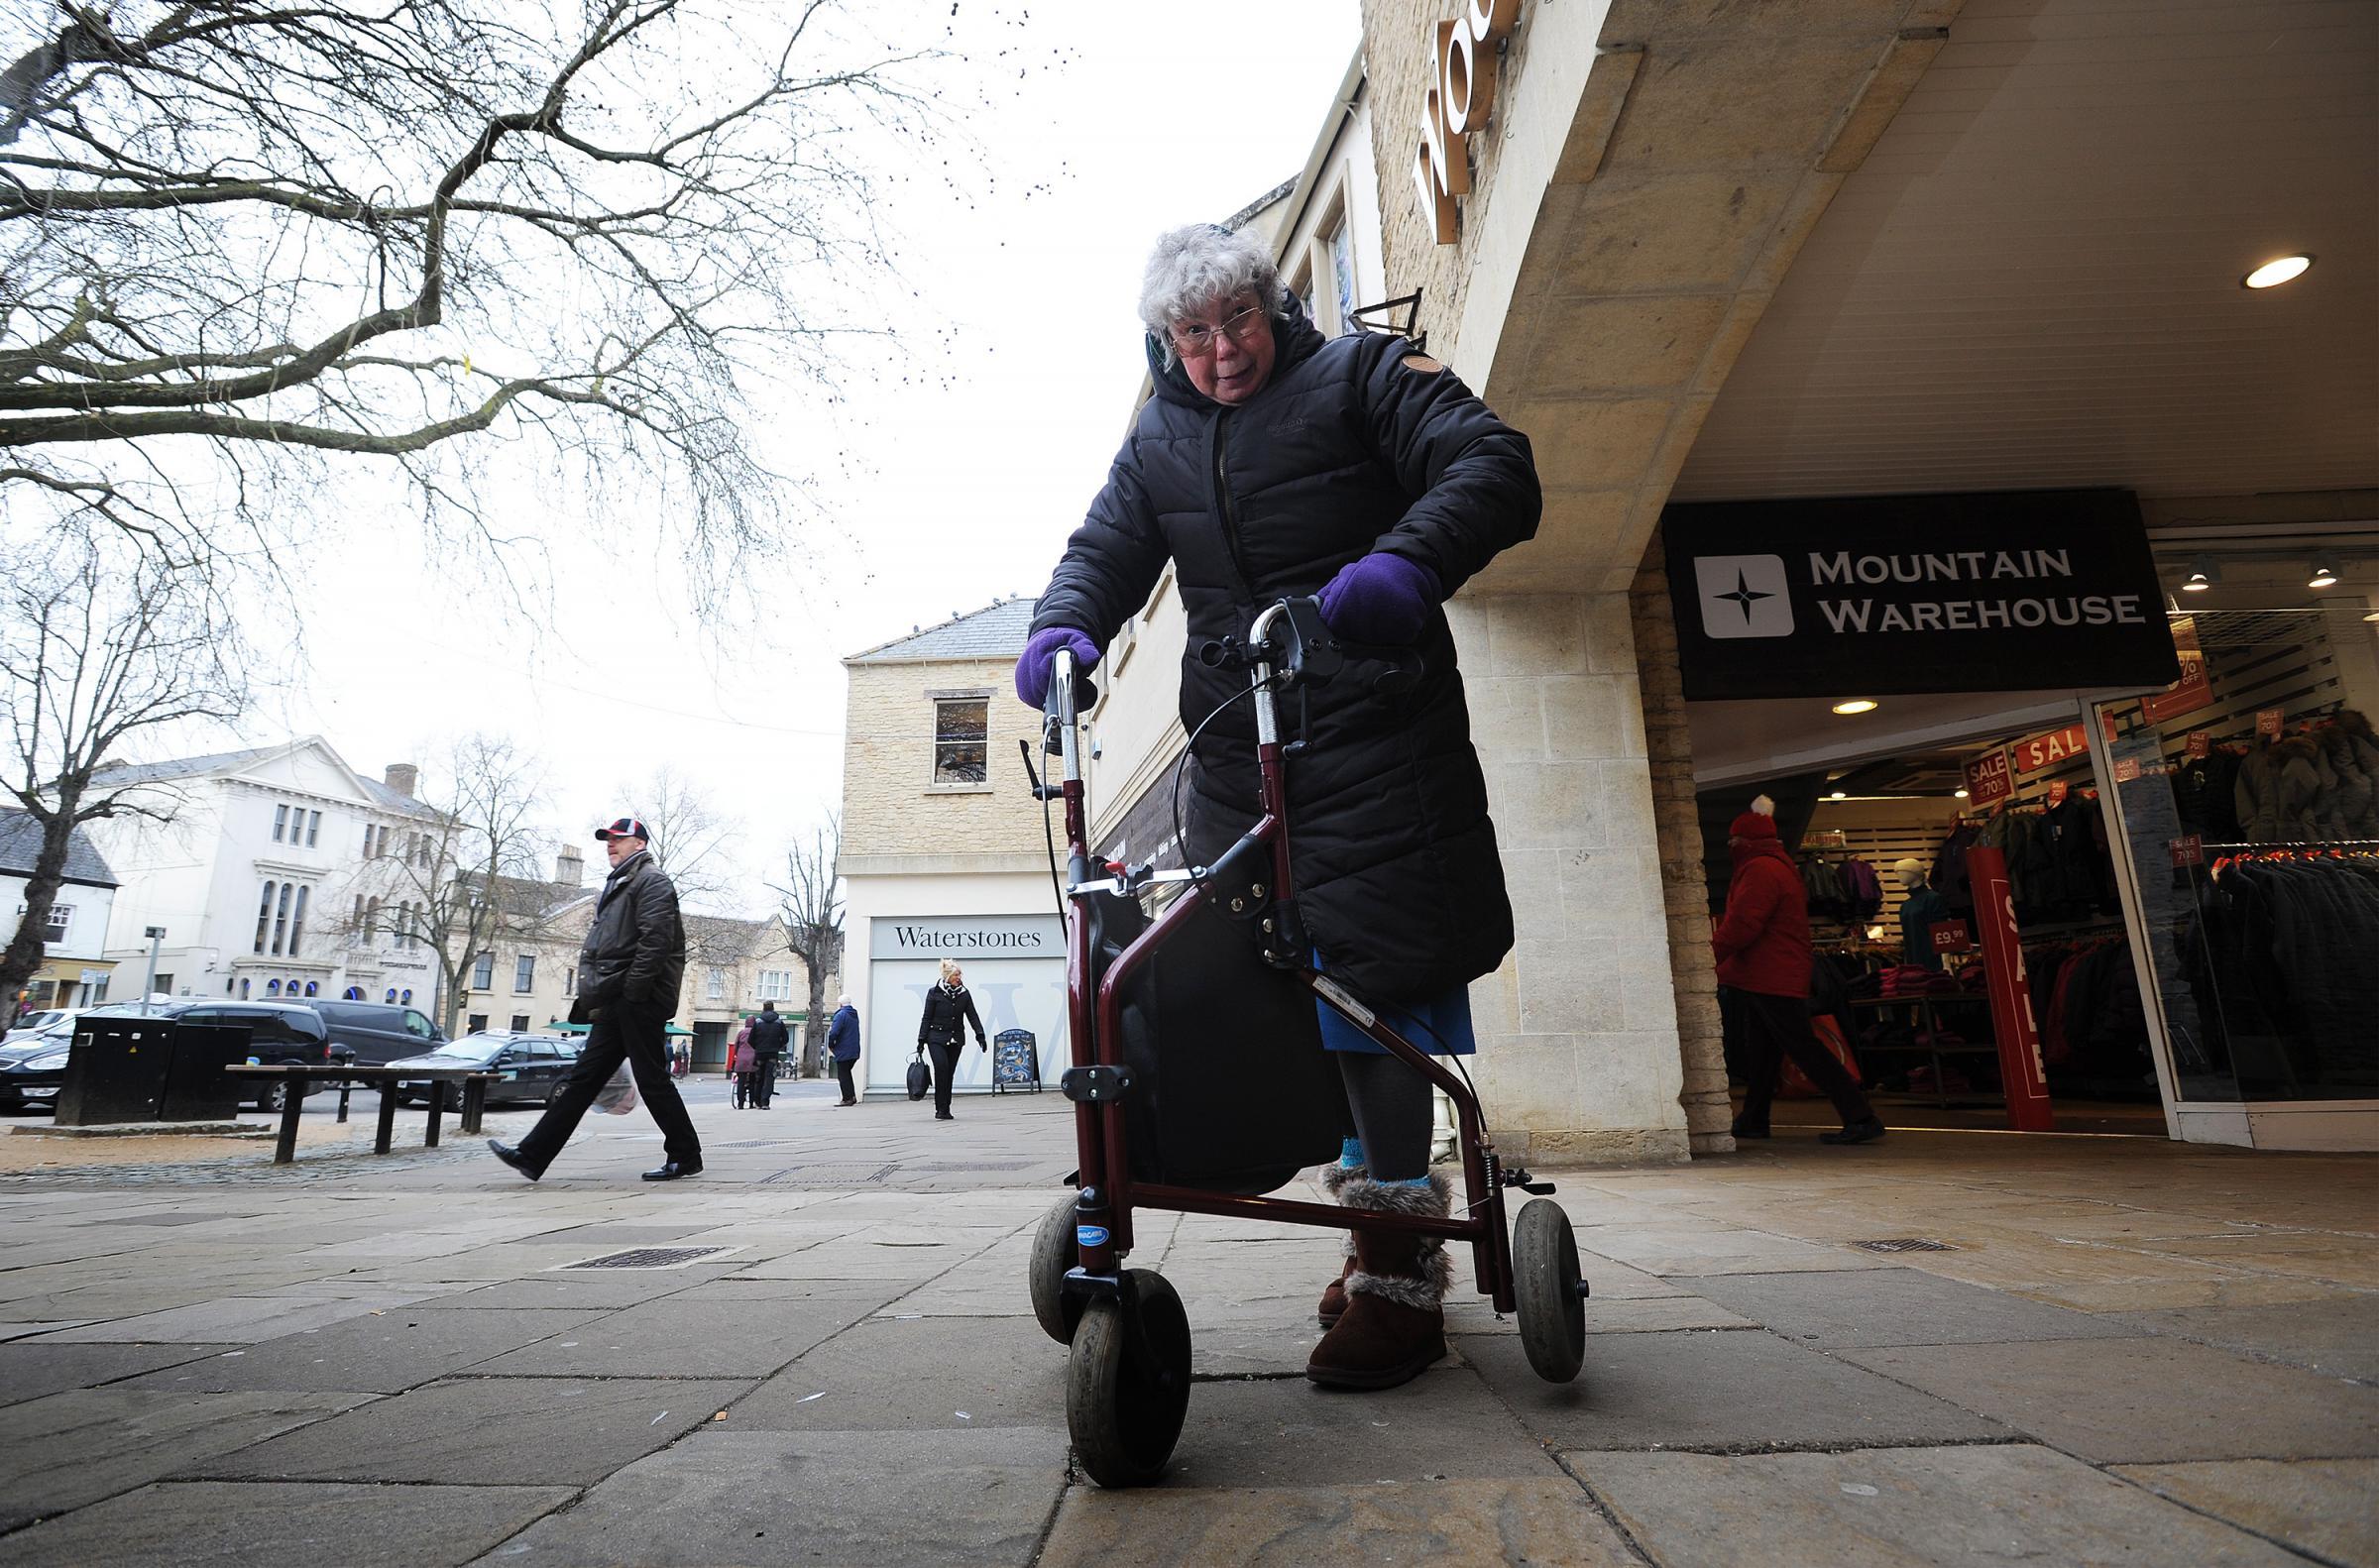 Dorothy Holloway, 68, broke her arm after tripping on uneven paving in Witney in 2015. She was only saved from another fall recently when two passers-by sprang into action. She is pictured is the Market Square with uneven paving stones some of which are s